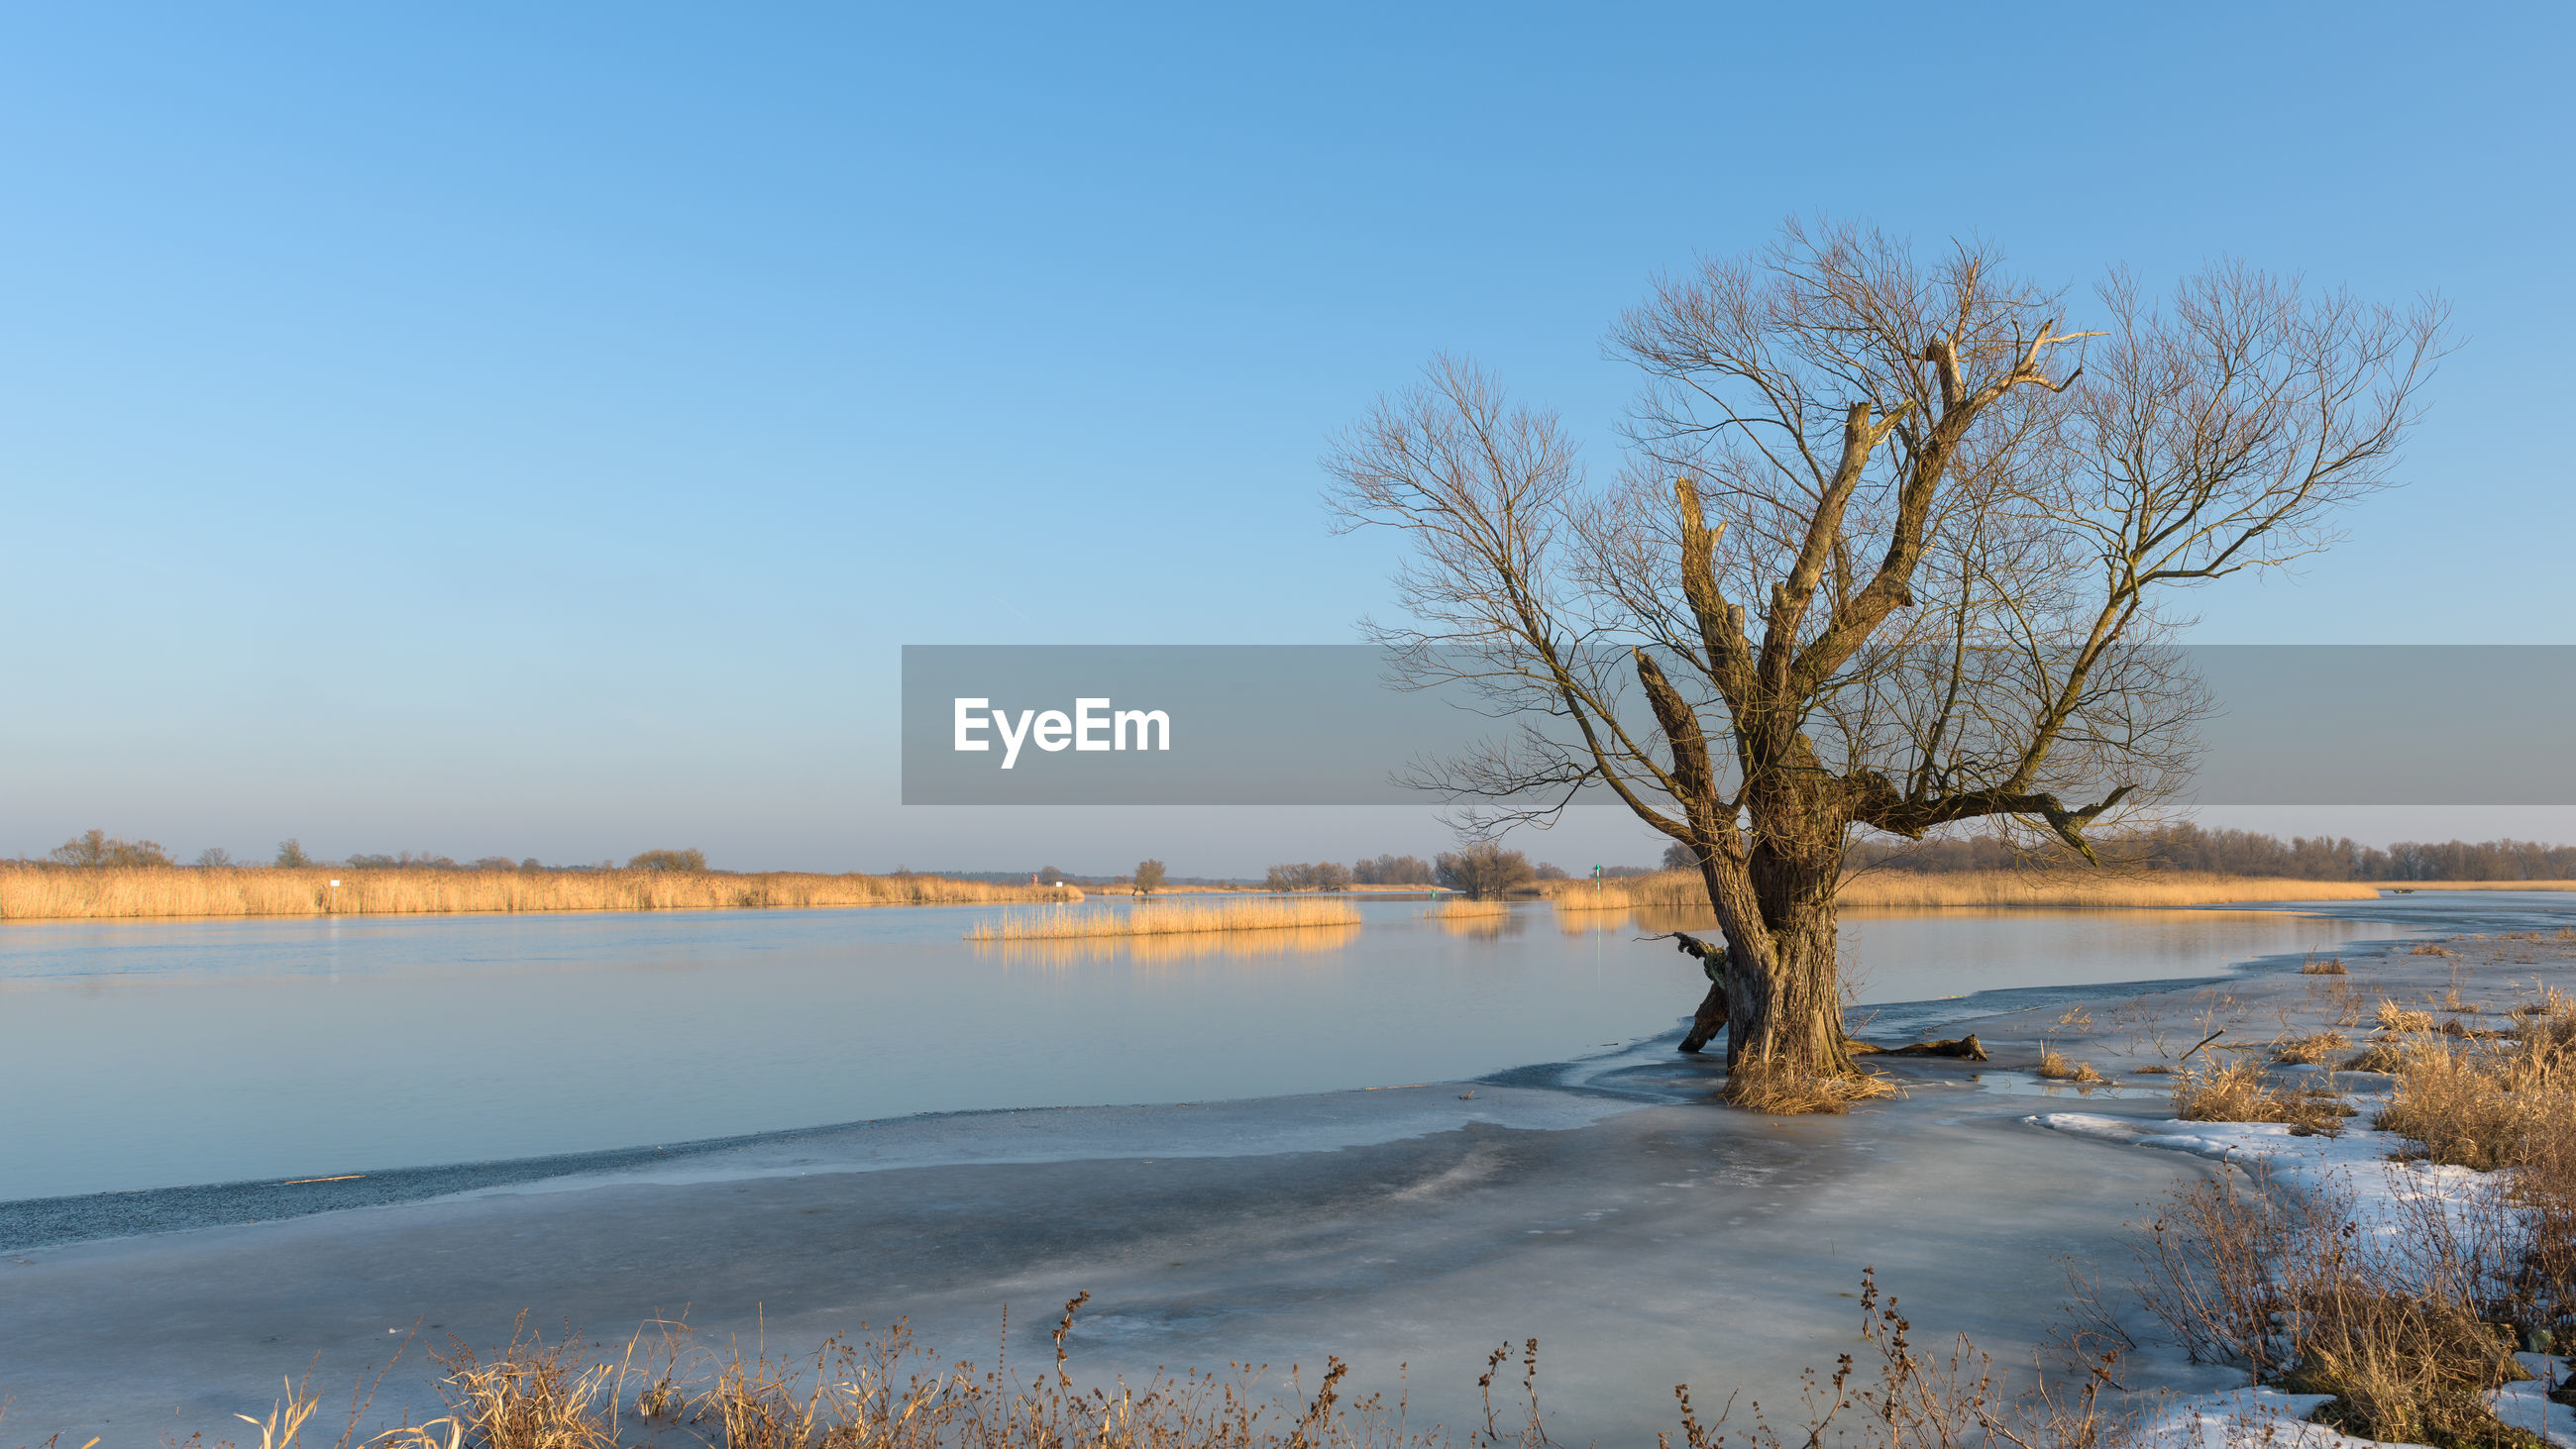 BARE TREE IN FROZEN LAKE AGAINST CLEAR BLUE SKY